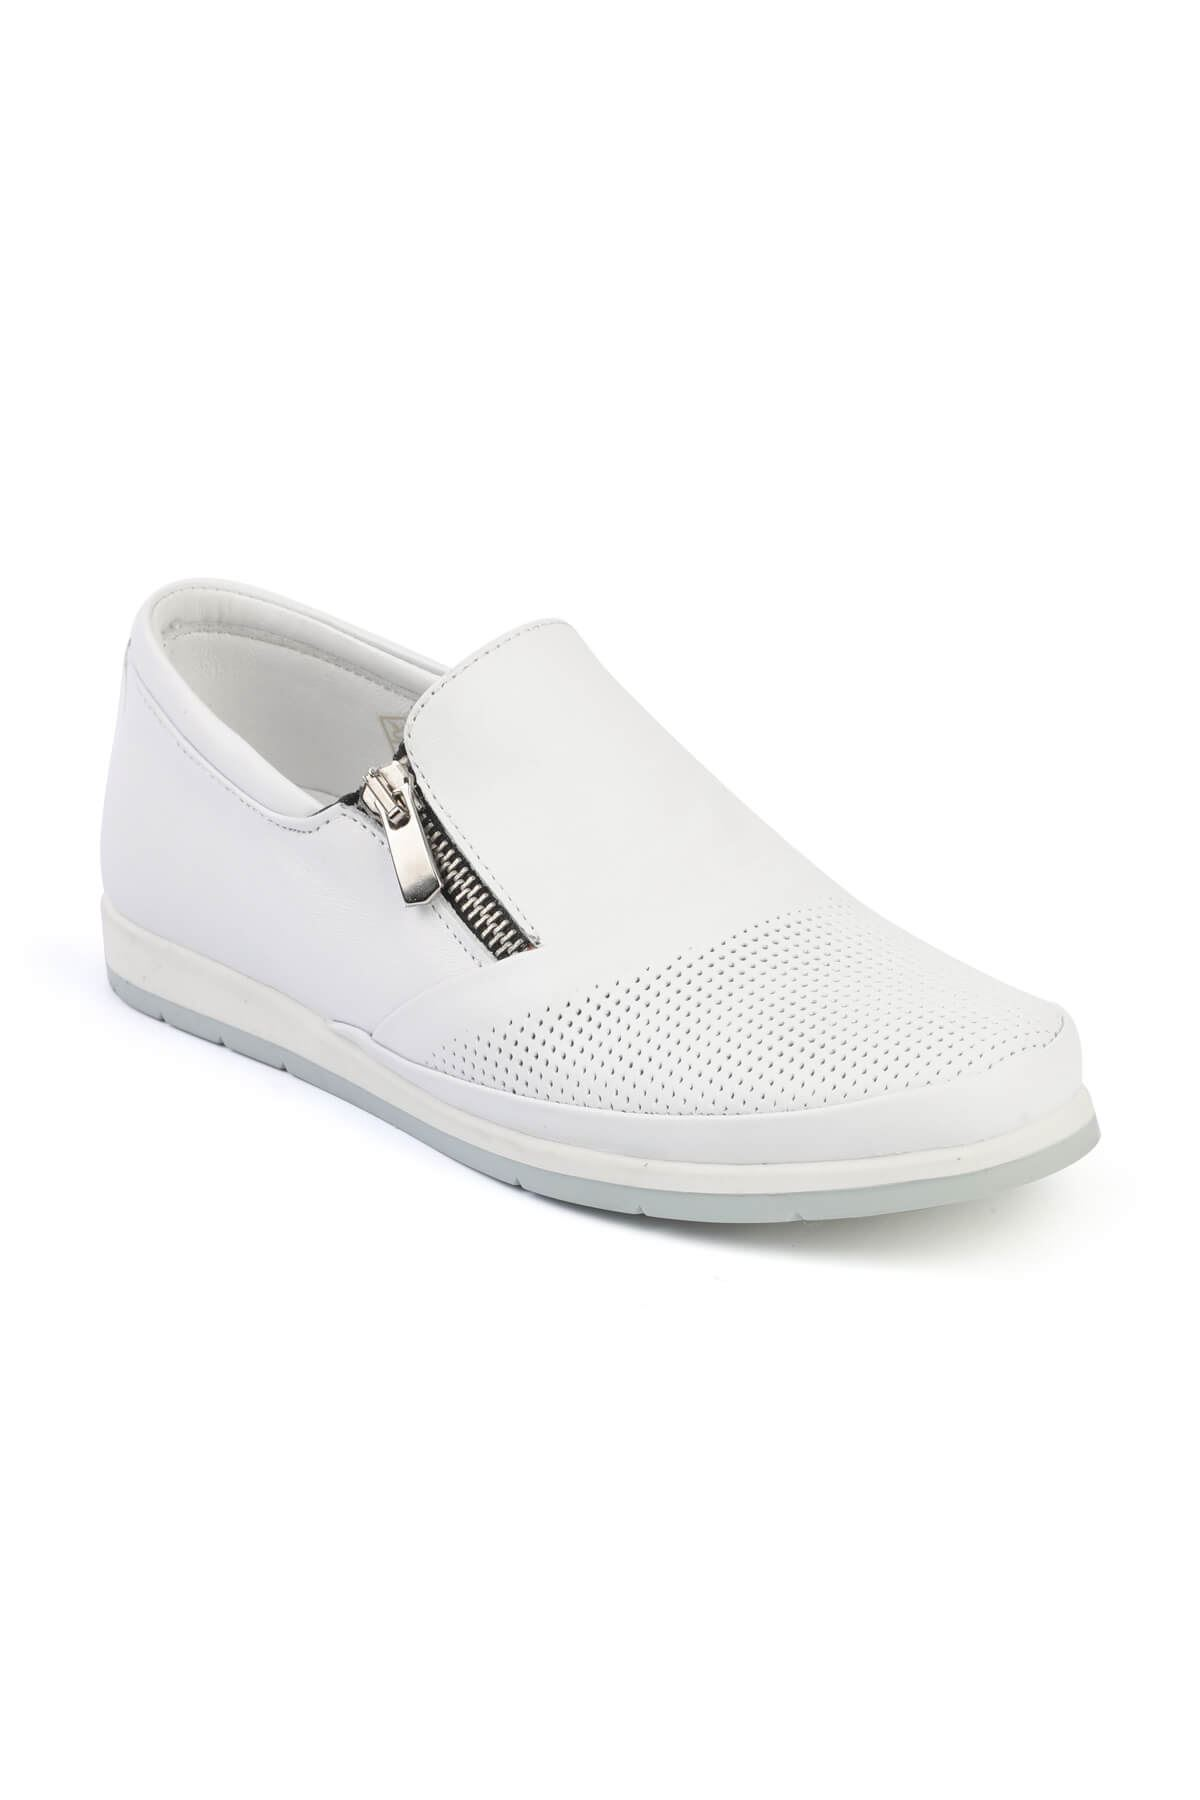 Libero FMS202 White Casual Shoes